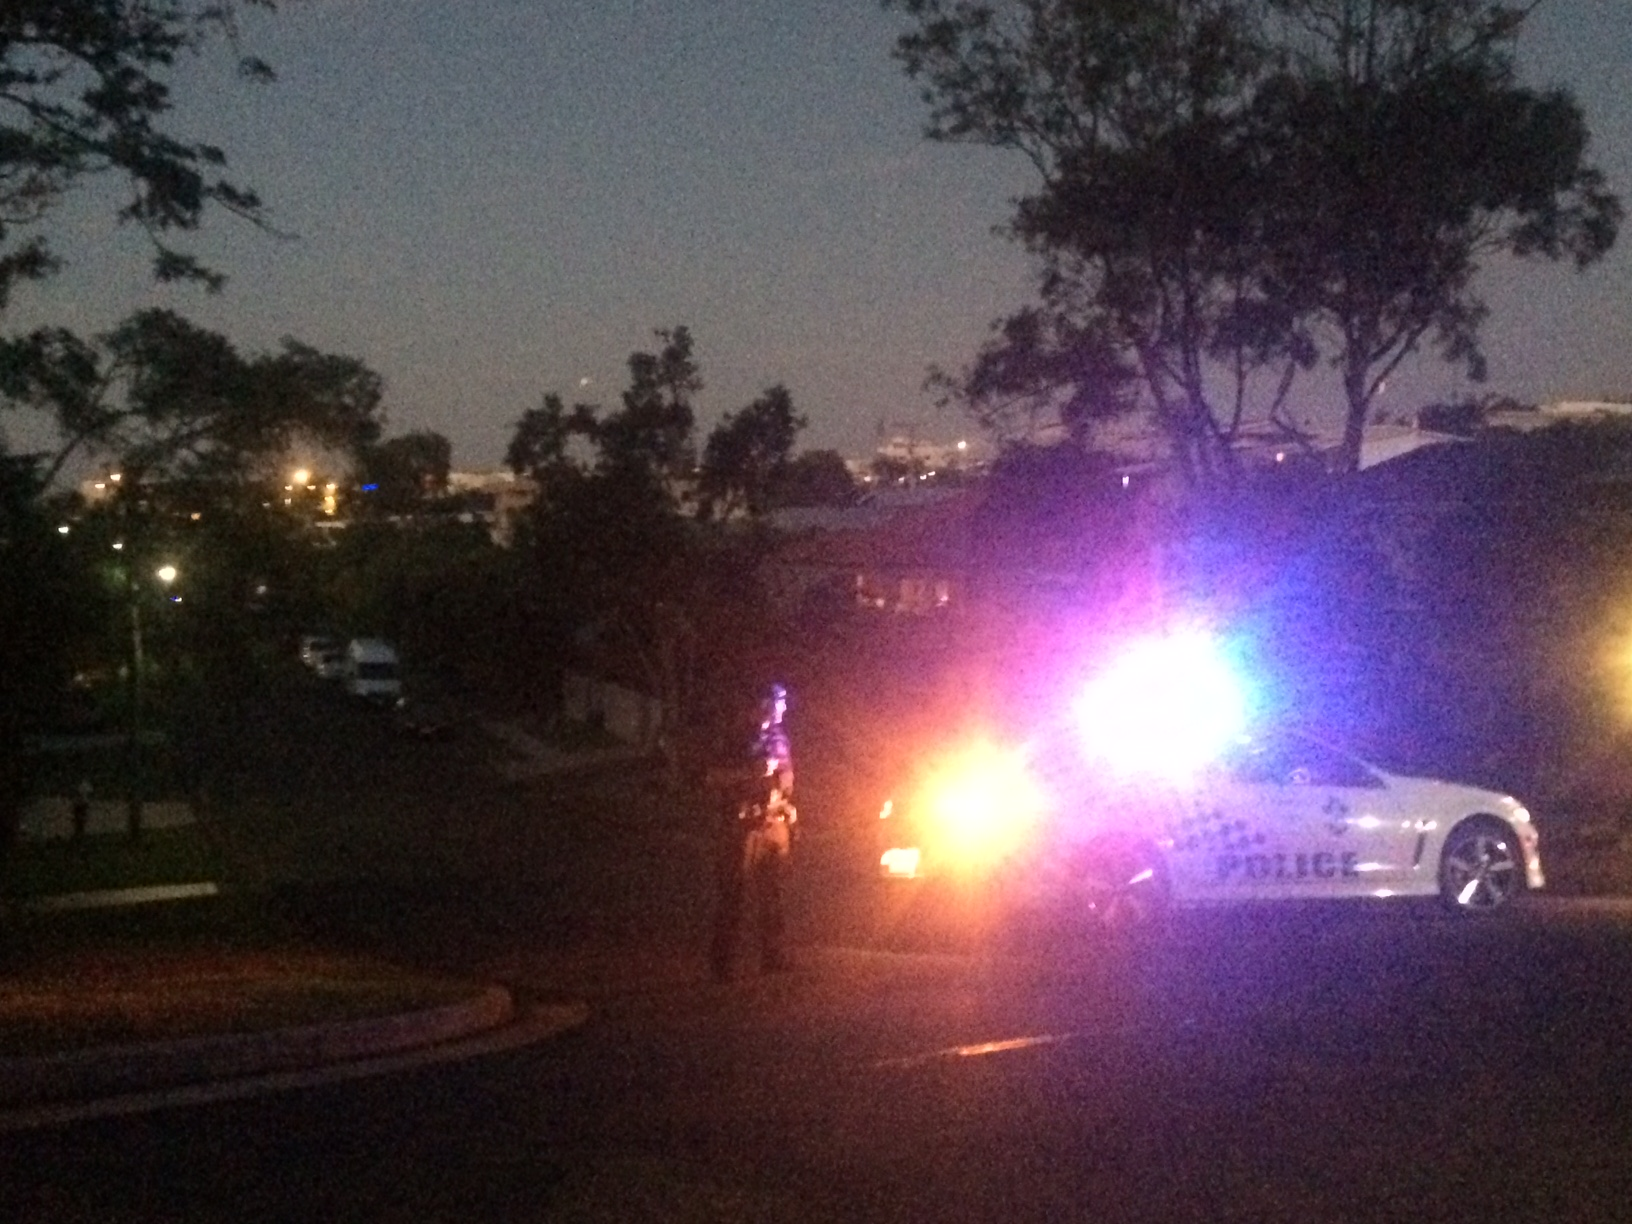 Police at the intersection of William and Mary Sts, Alexandra Headland.